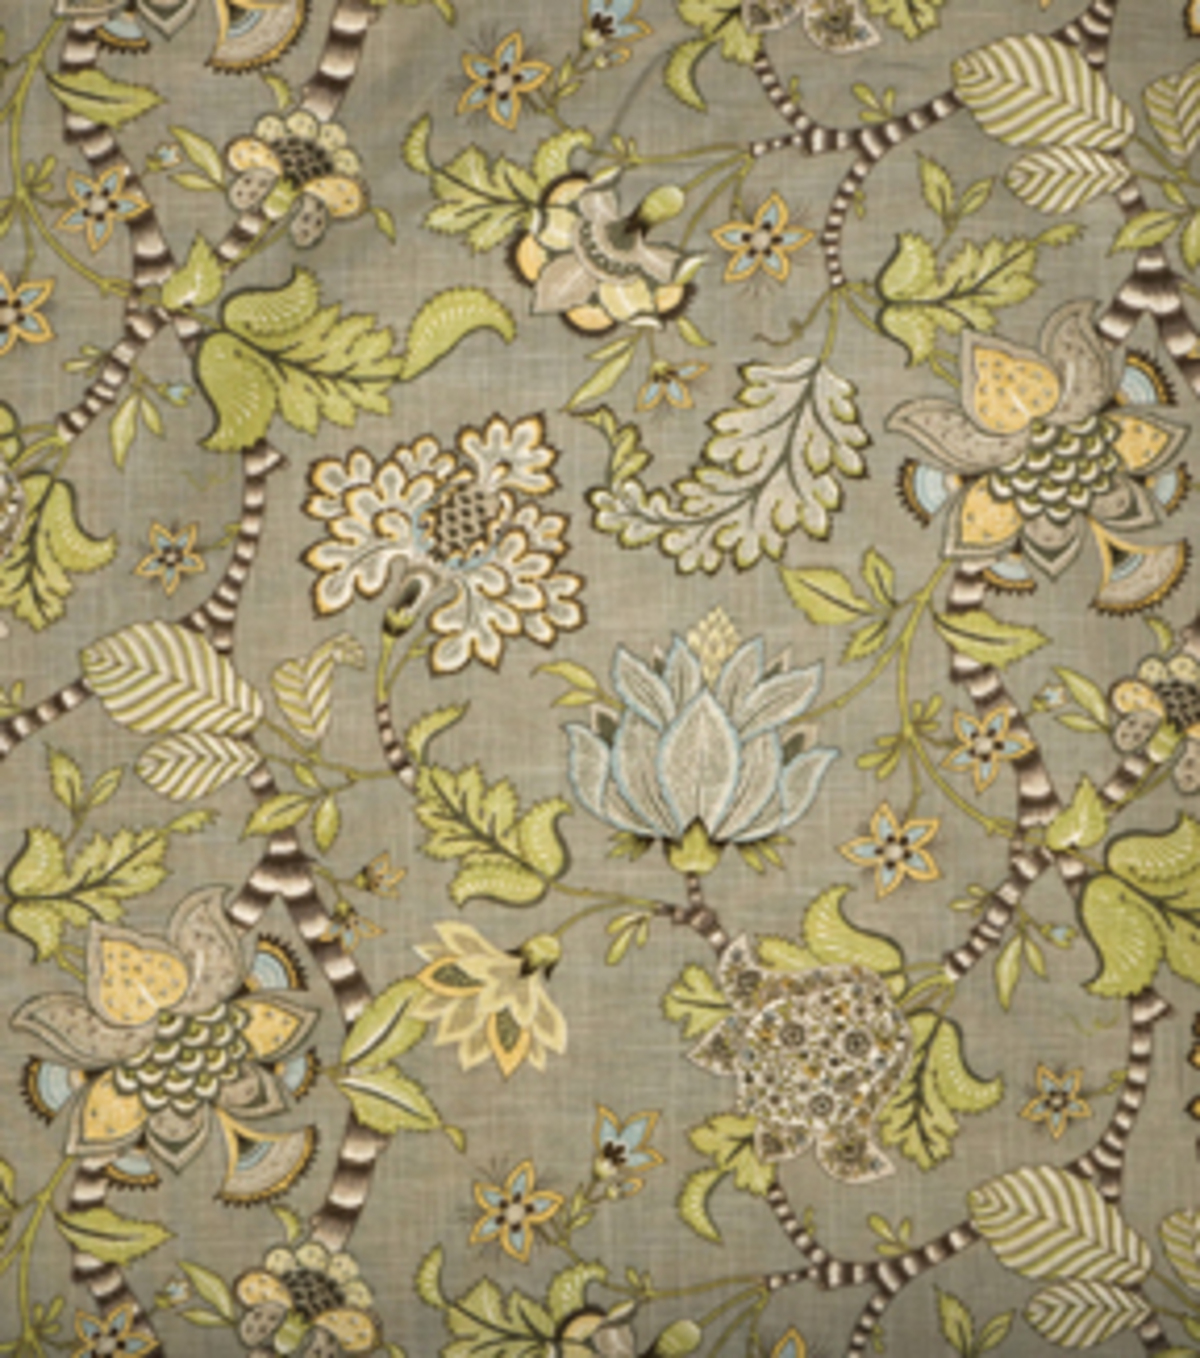 Home Decor 8\u0022x8\u0022 Fabric Swatch-Eaton Square Course Seagreen